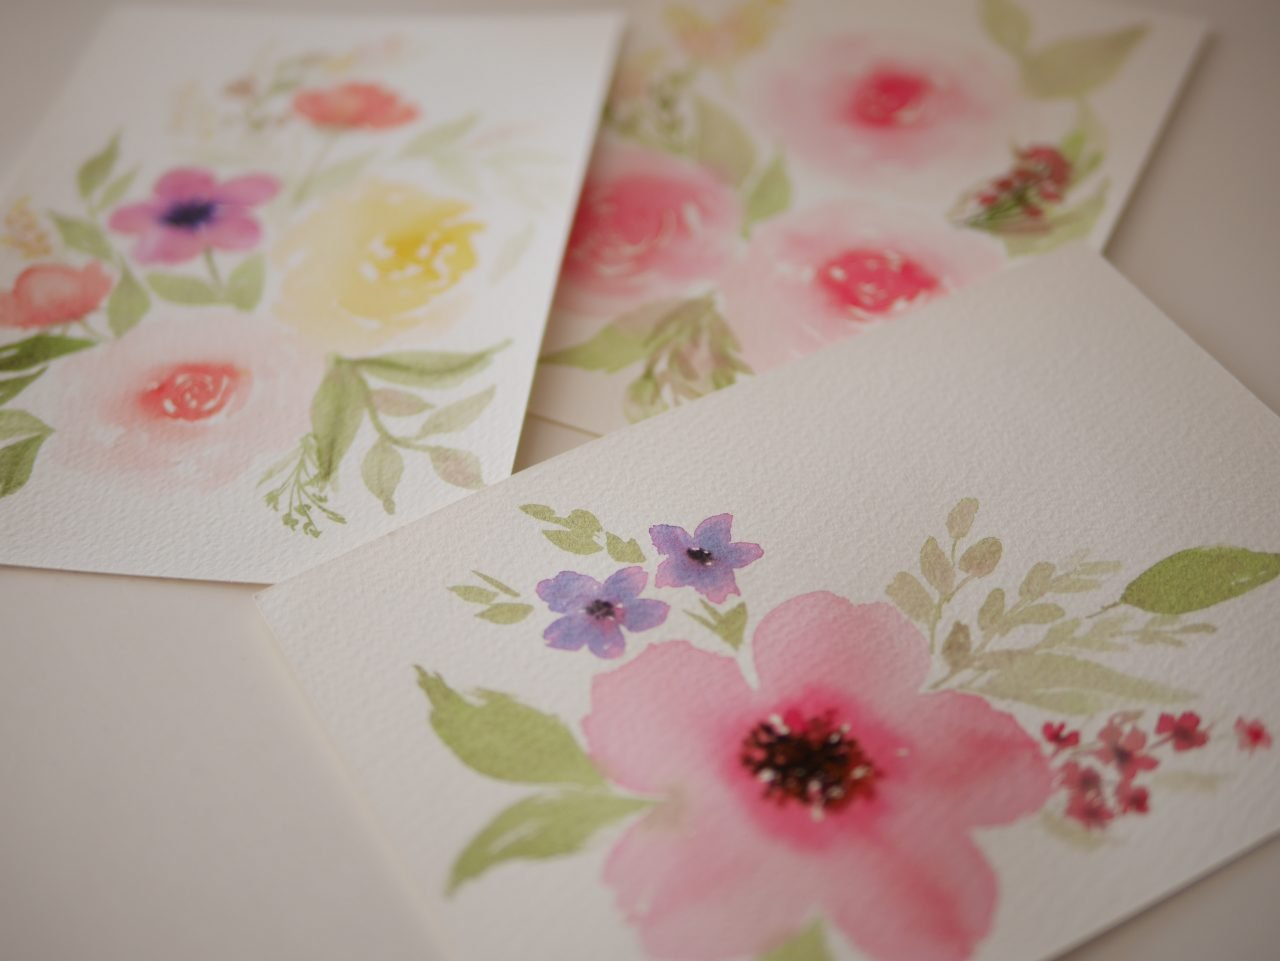 watercolor practice, loose floral posies